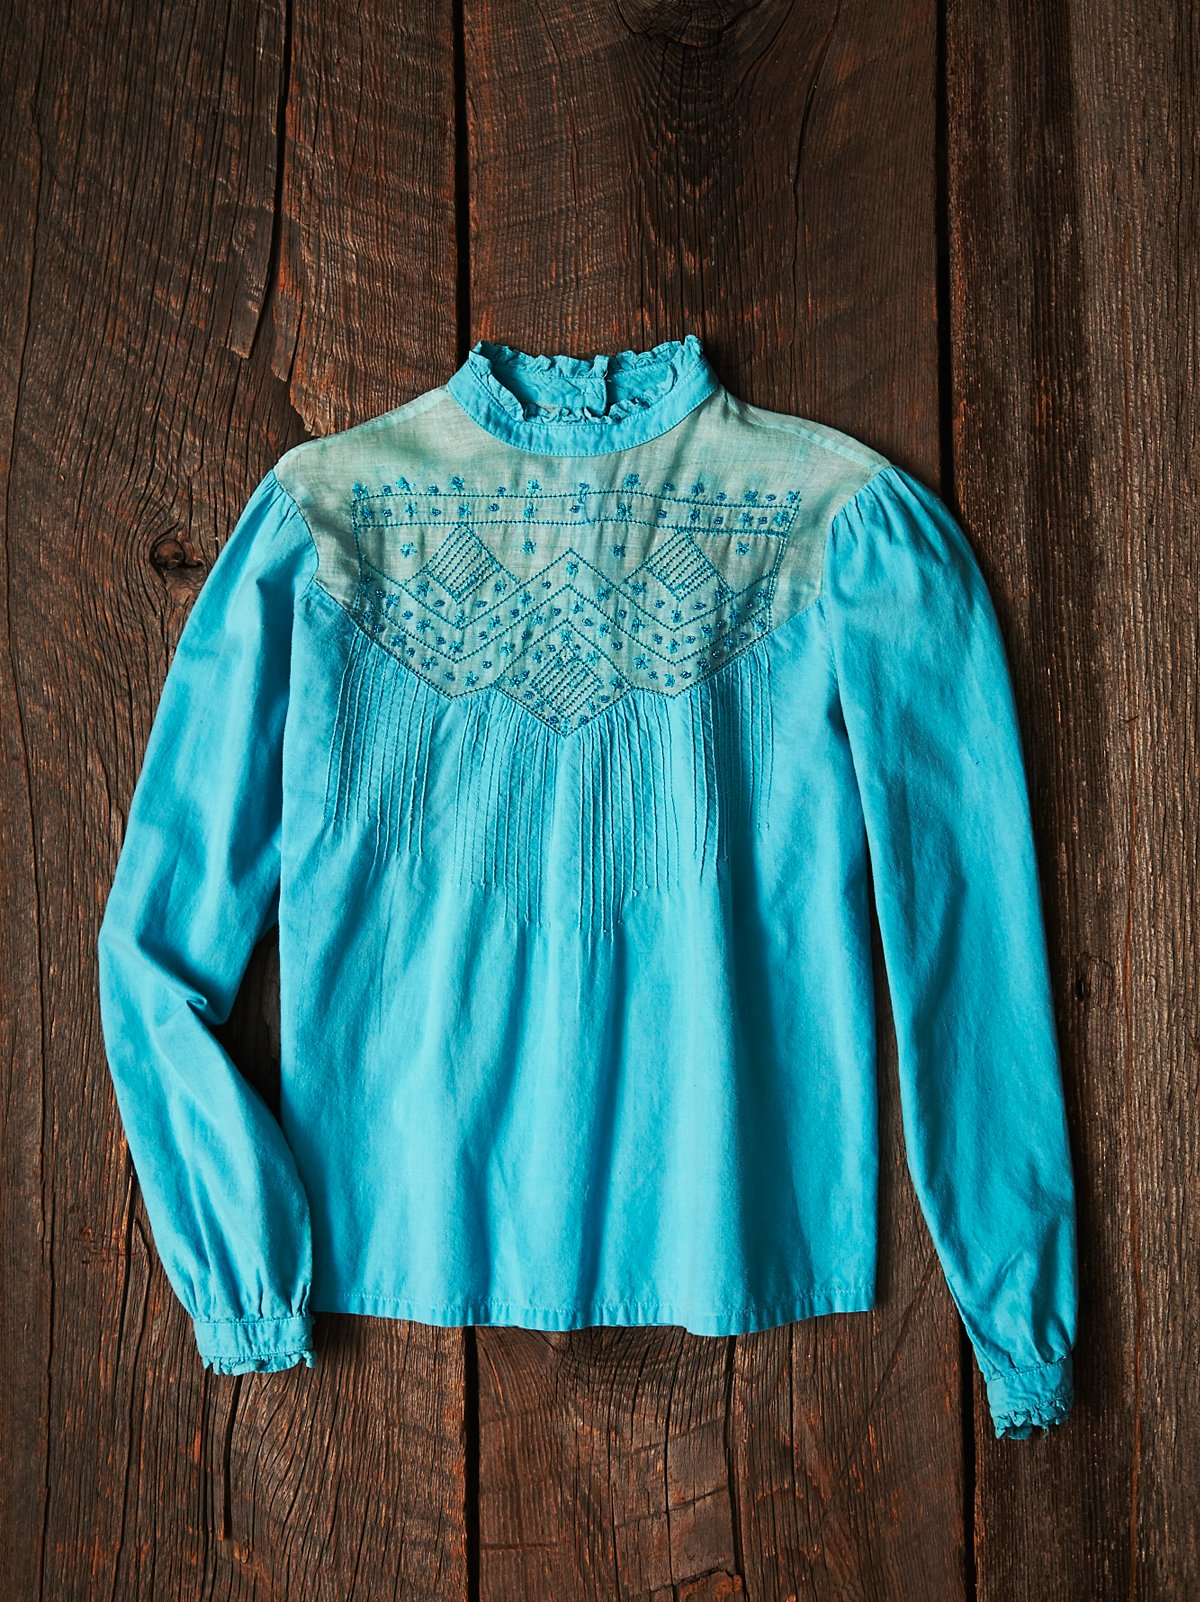 Vintage Teal Embroidered Shirt